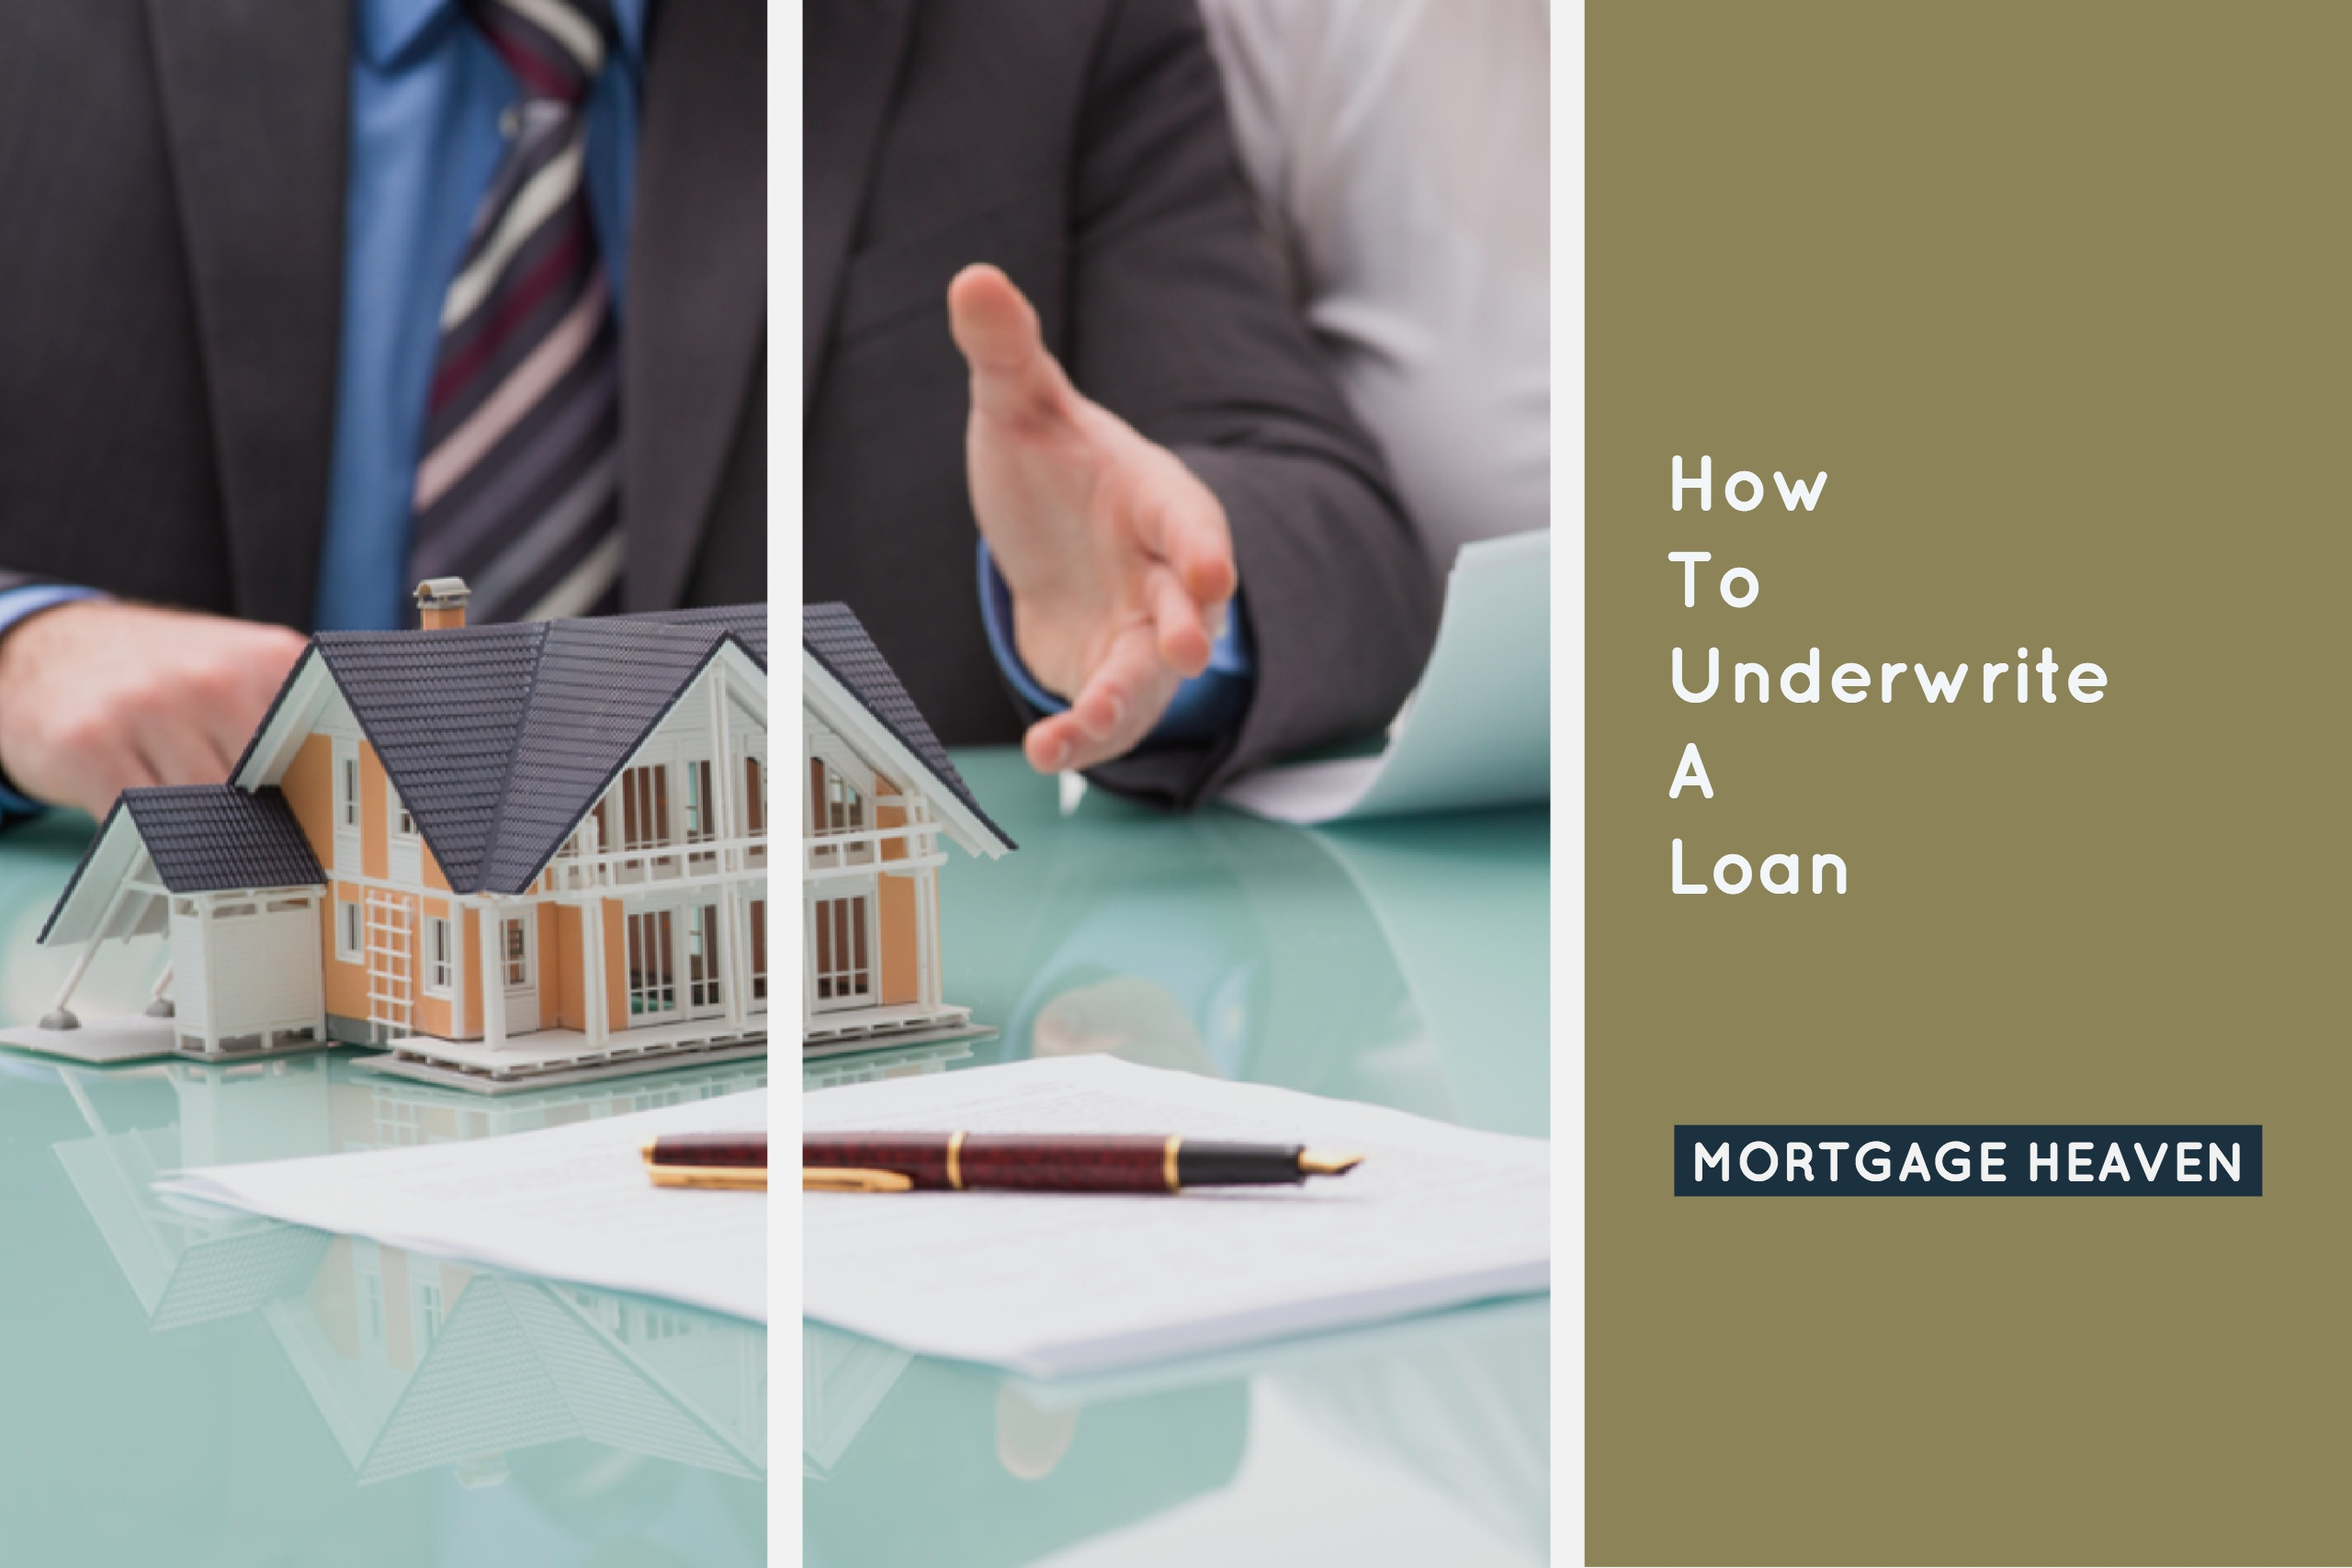 What Do You Need To Apply For A Mortgage